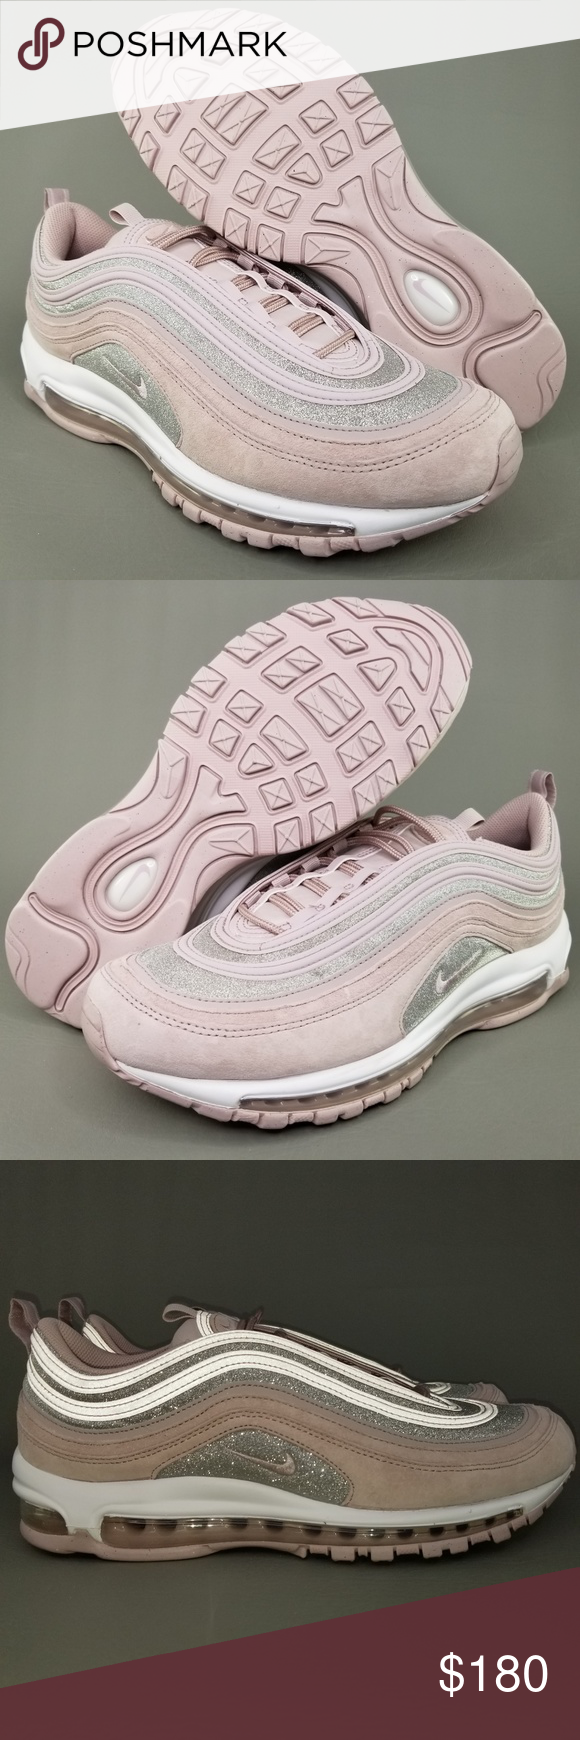 Nike Air Max 97 Particle Rose Shoes Womens 12 Pink Nike Air